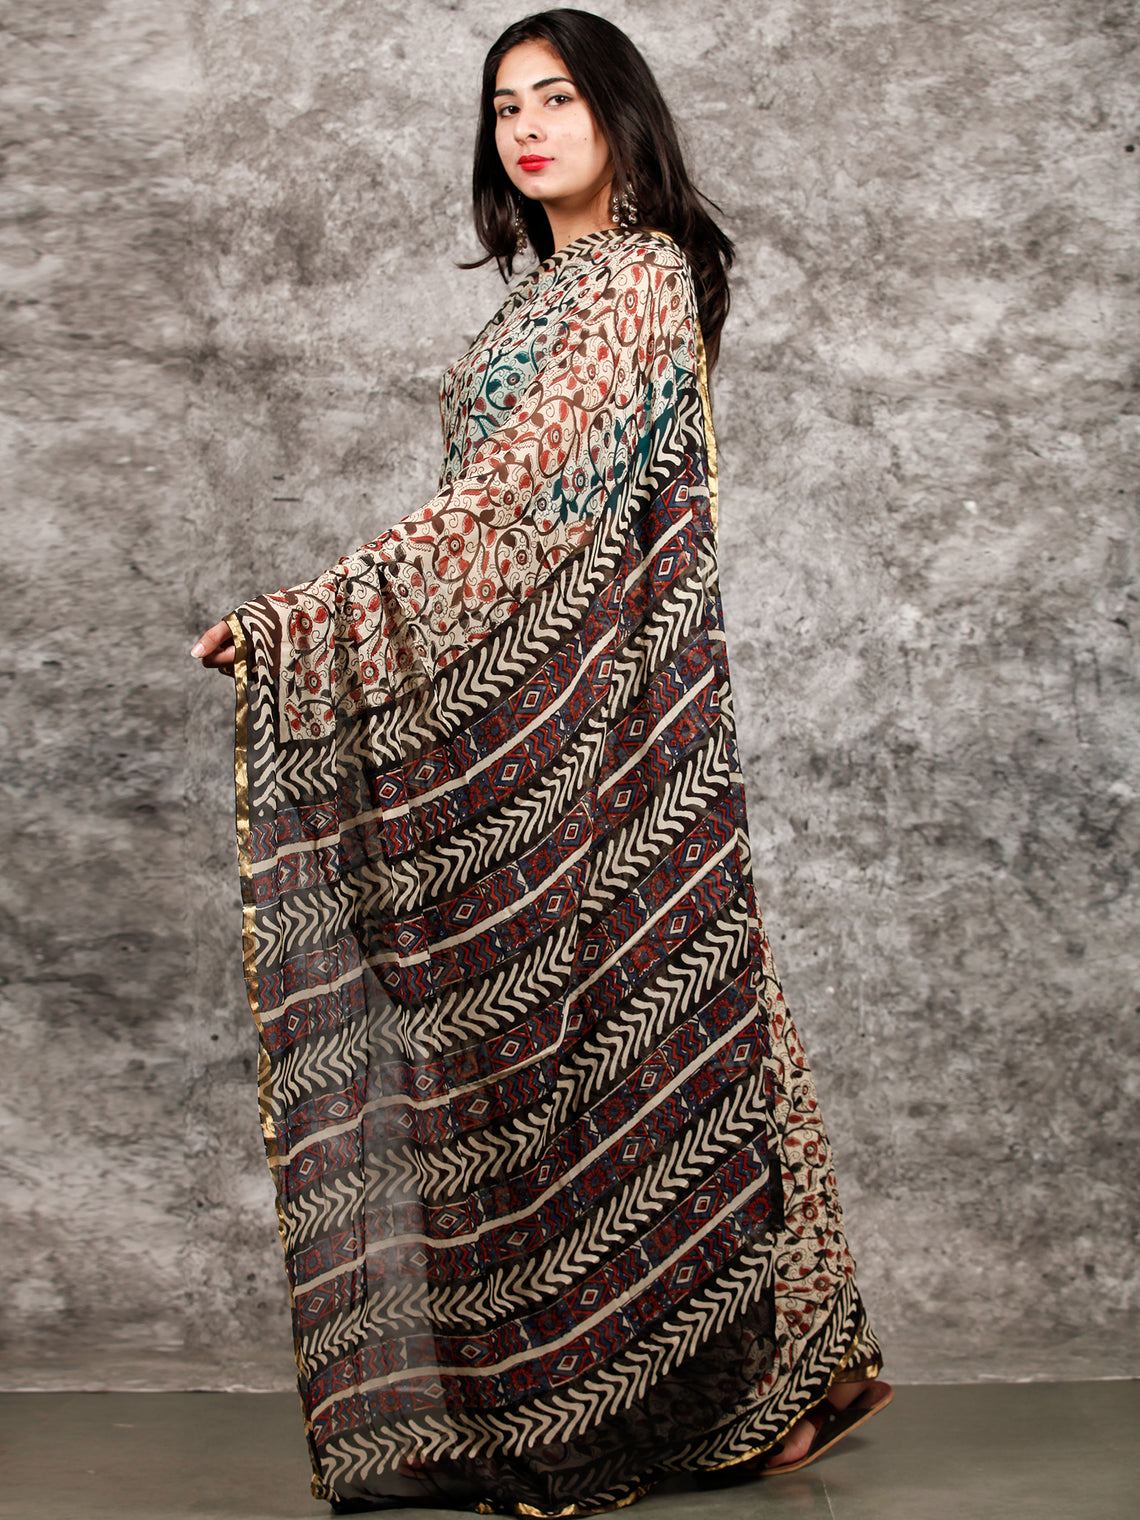 Ivory Red Black Hand Block Printed Chiffon Saree with Zari Border - S031703218